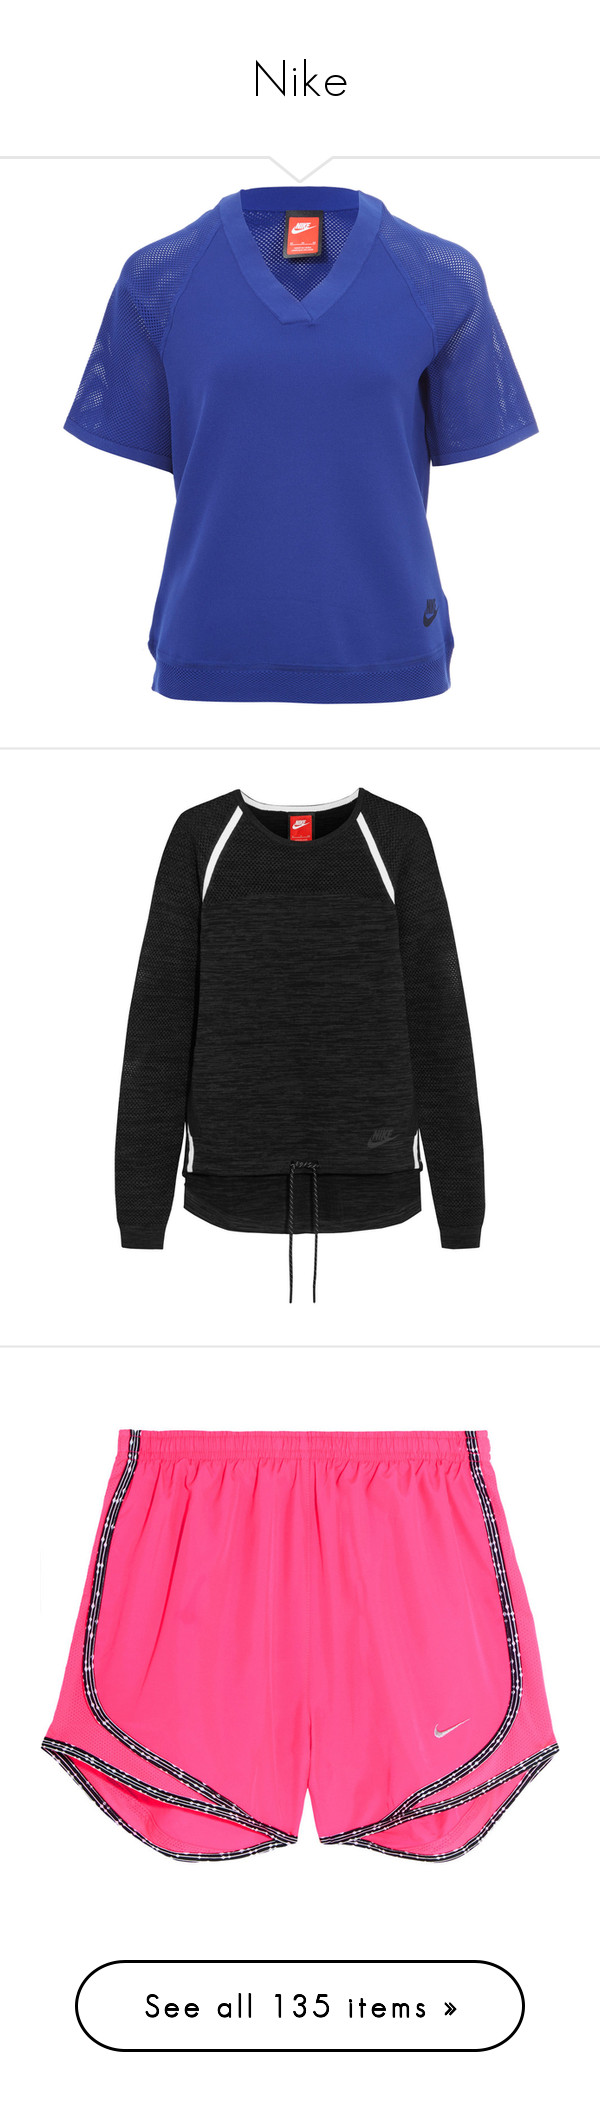 """""""Nike"""" by desertunknownwolf ❤ liked on Polyvore featuring tops, nike top, v neck knit top, blue knit top, blue top, double layer top, black, nike, stretch jersey and activewear"""